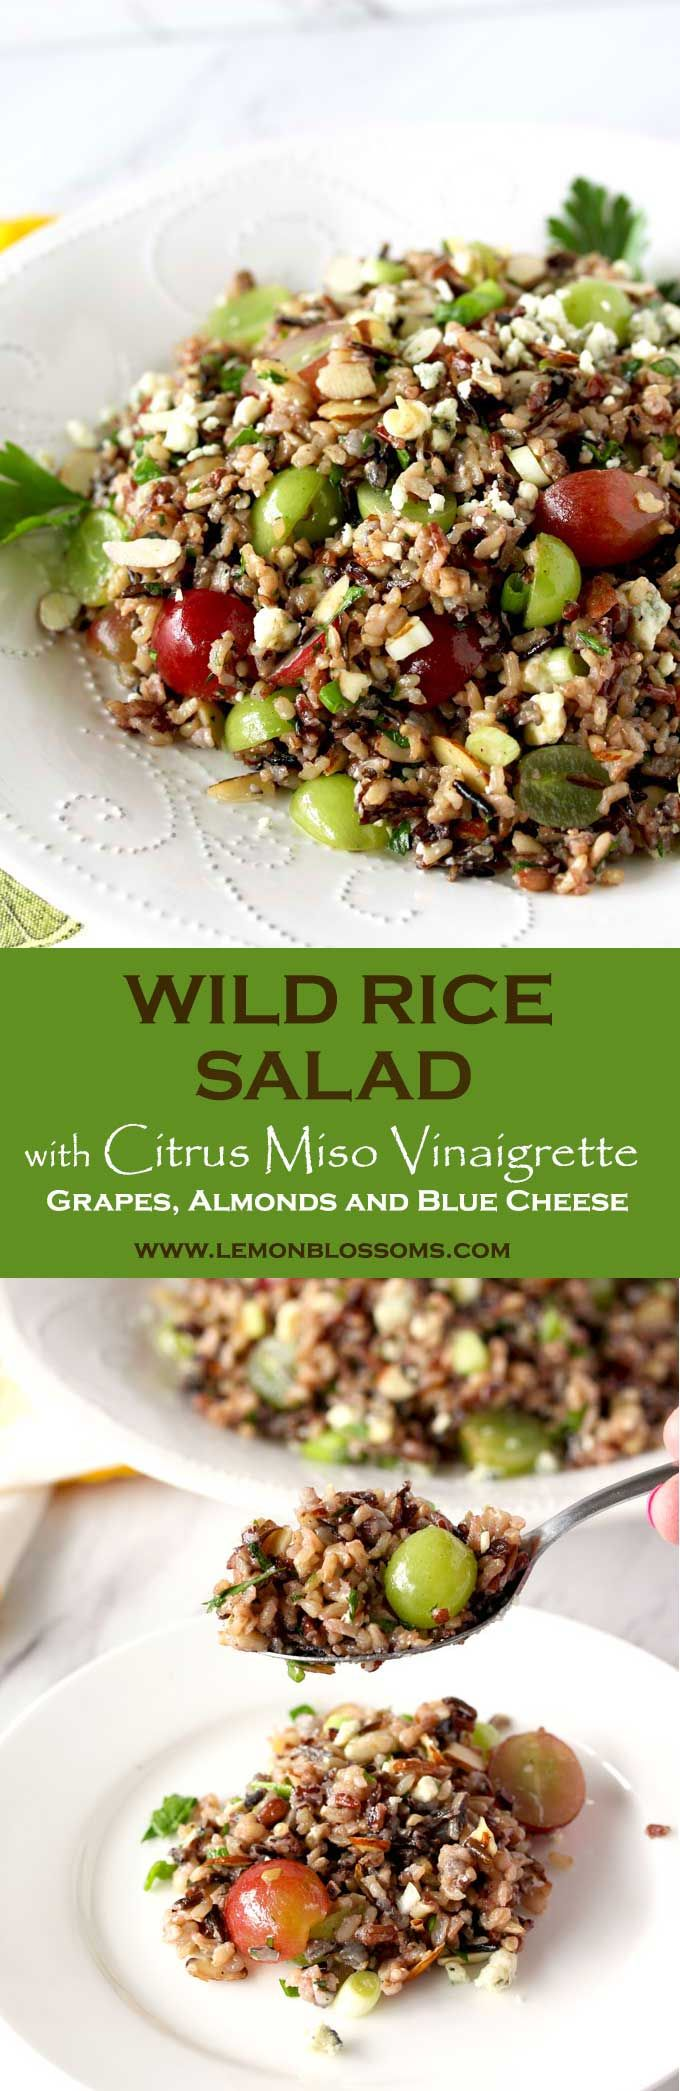 This Wild Rice Salad with grapes, almonds and blue cheese is tossed with the easiest, most flavorful Citrus Miso Vinaigrette. The Perfect served as a salad or side dish.  #sidedish #wildrice #salad via @lmnblossoms